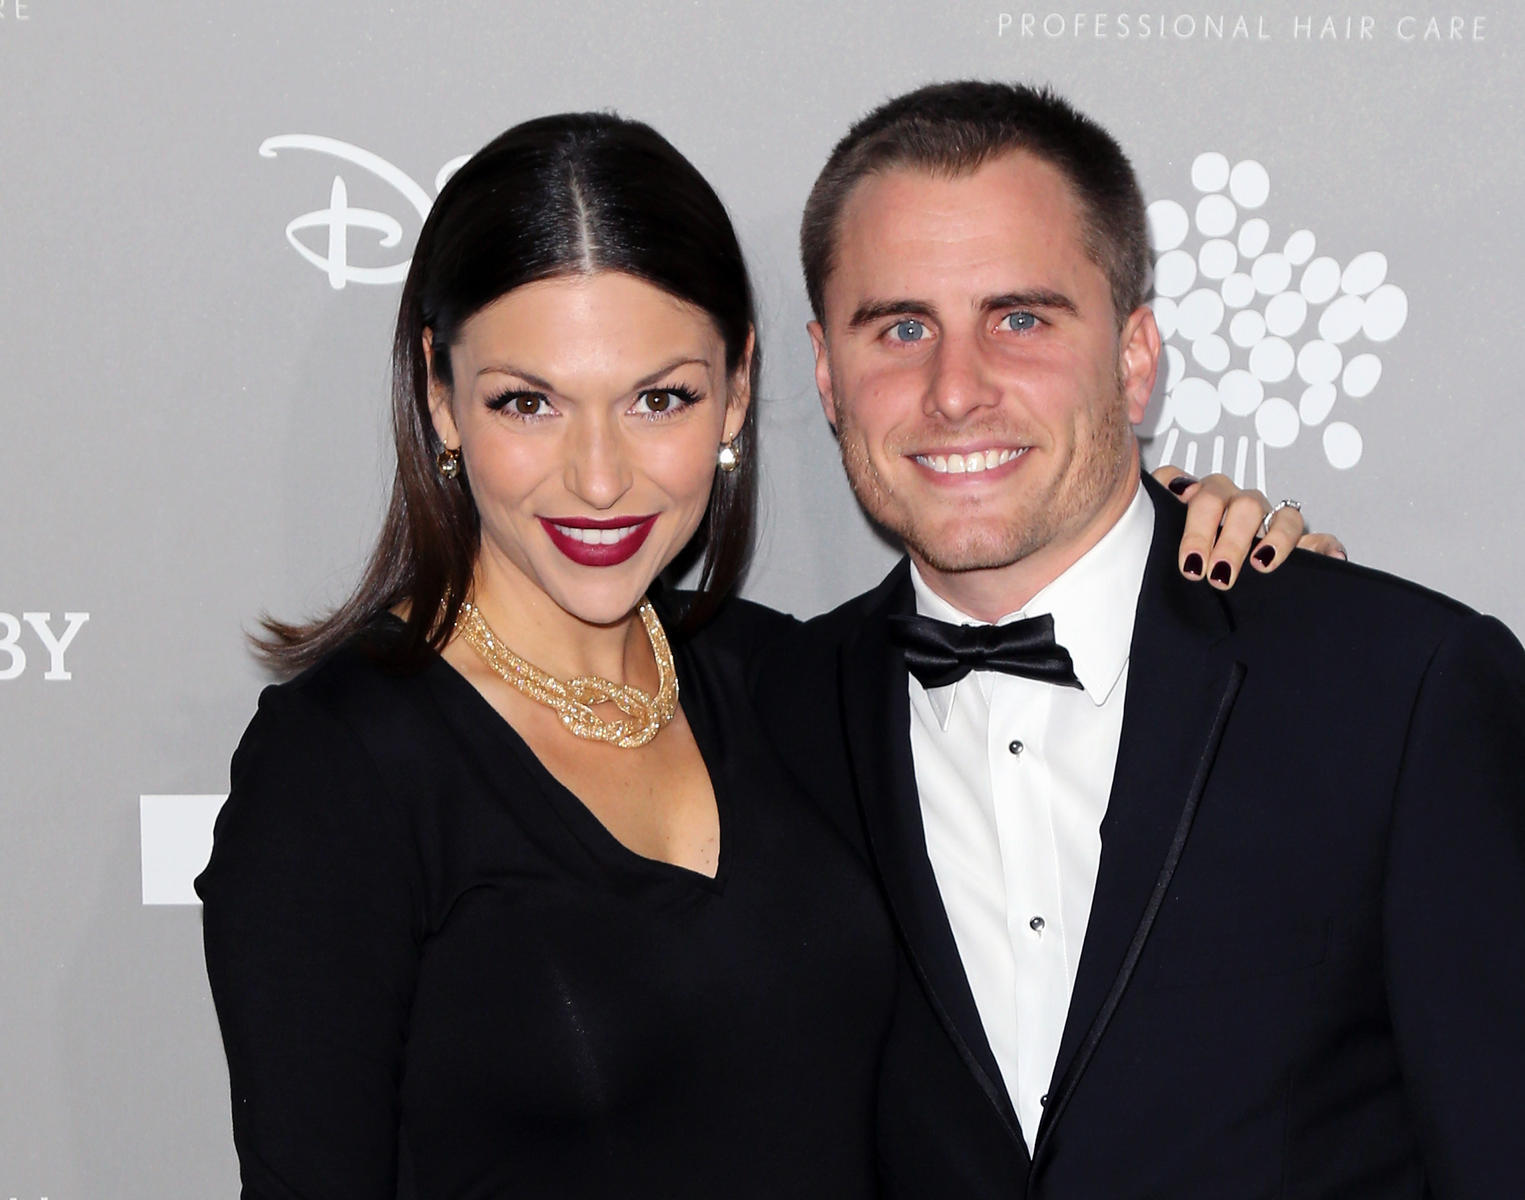 DeAnna Pappas Stagliano Baby2Baby Gala